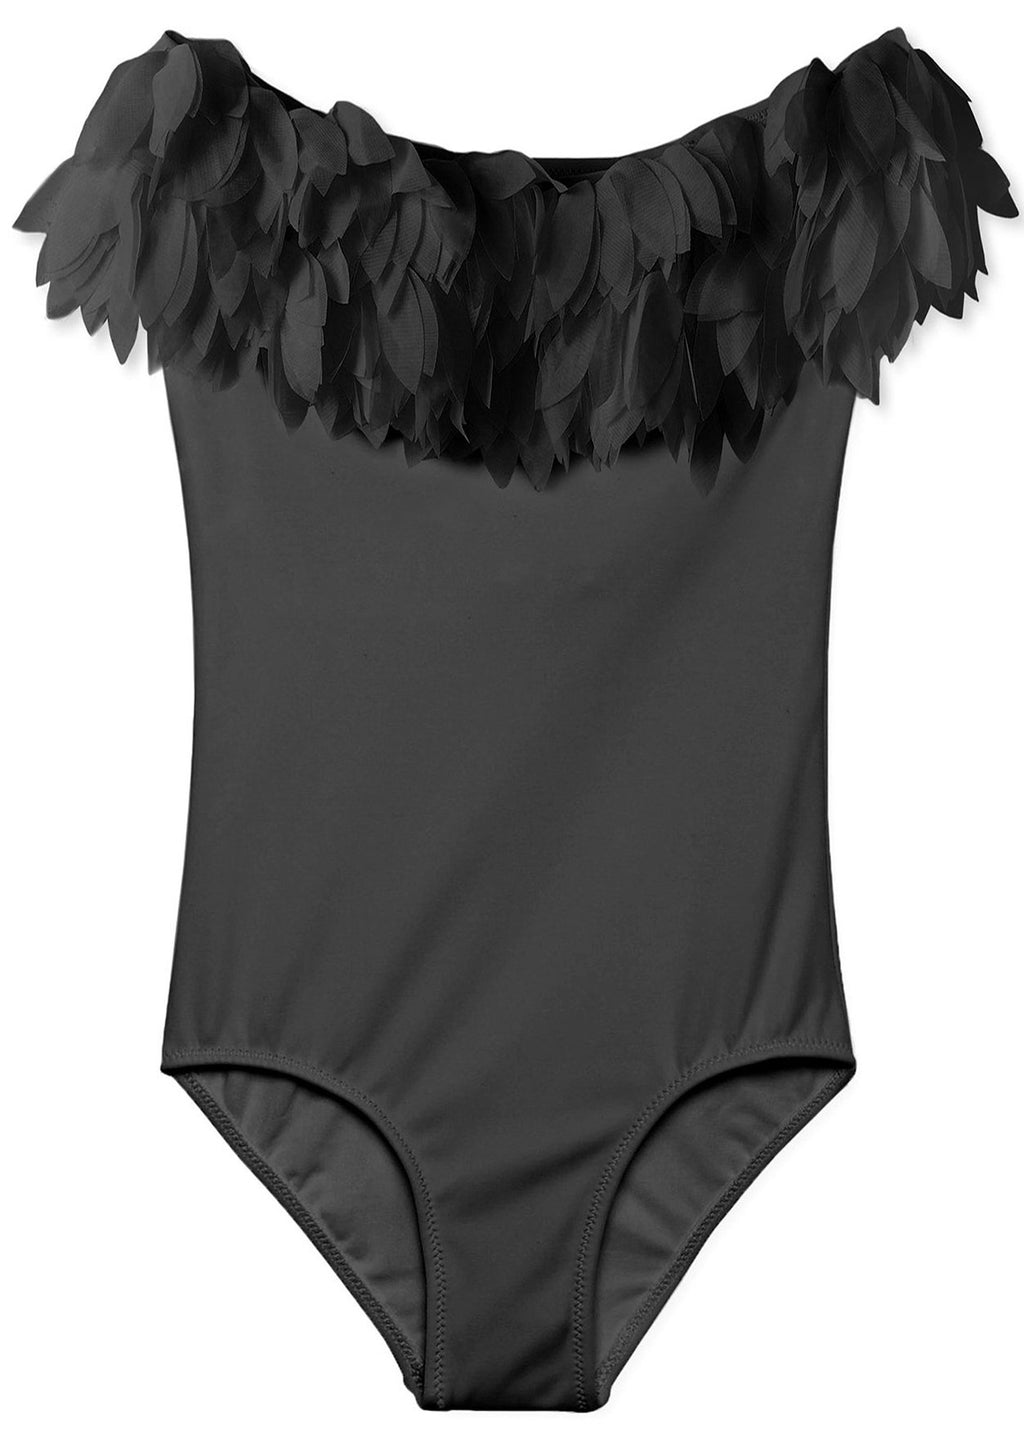 Stella Cove Black Draped Swimsuit with Black Petals